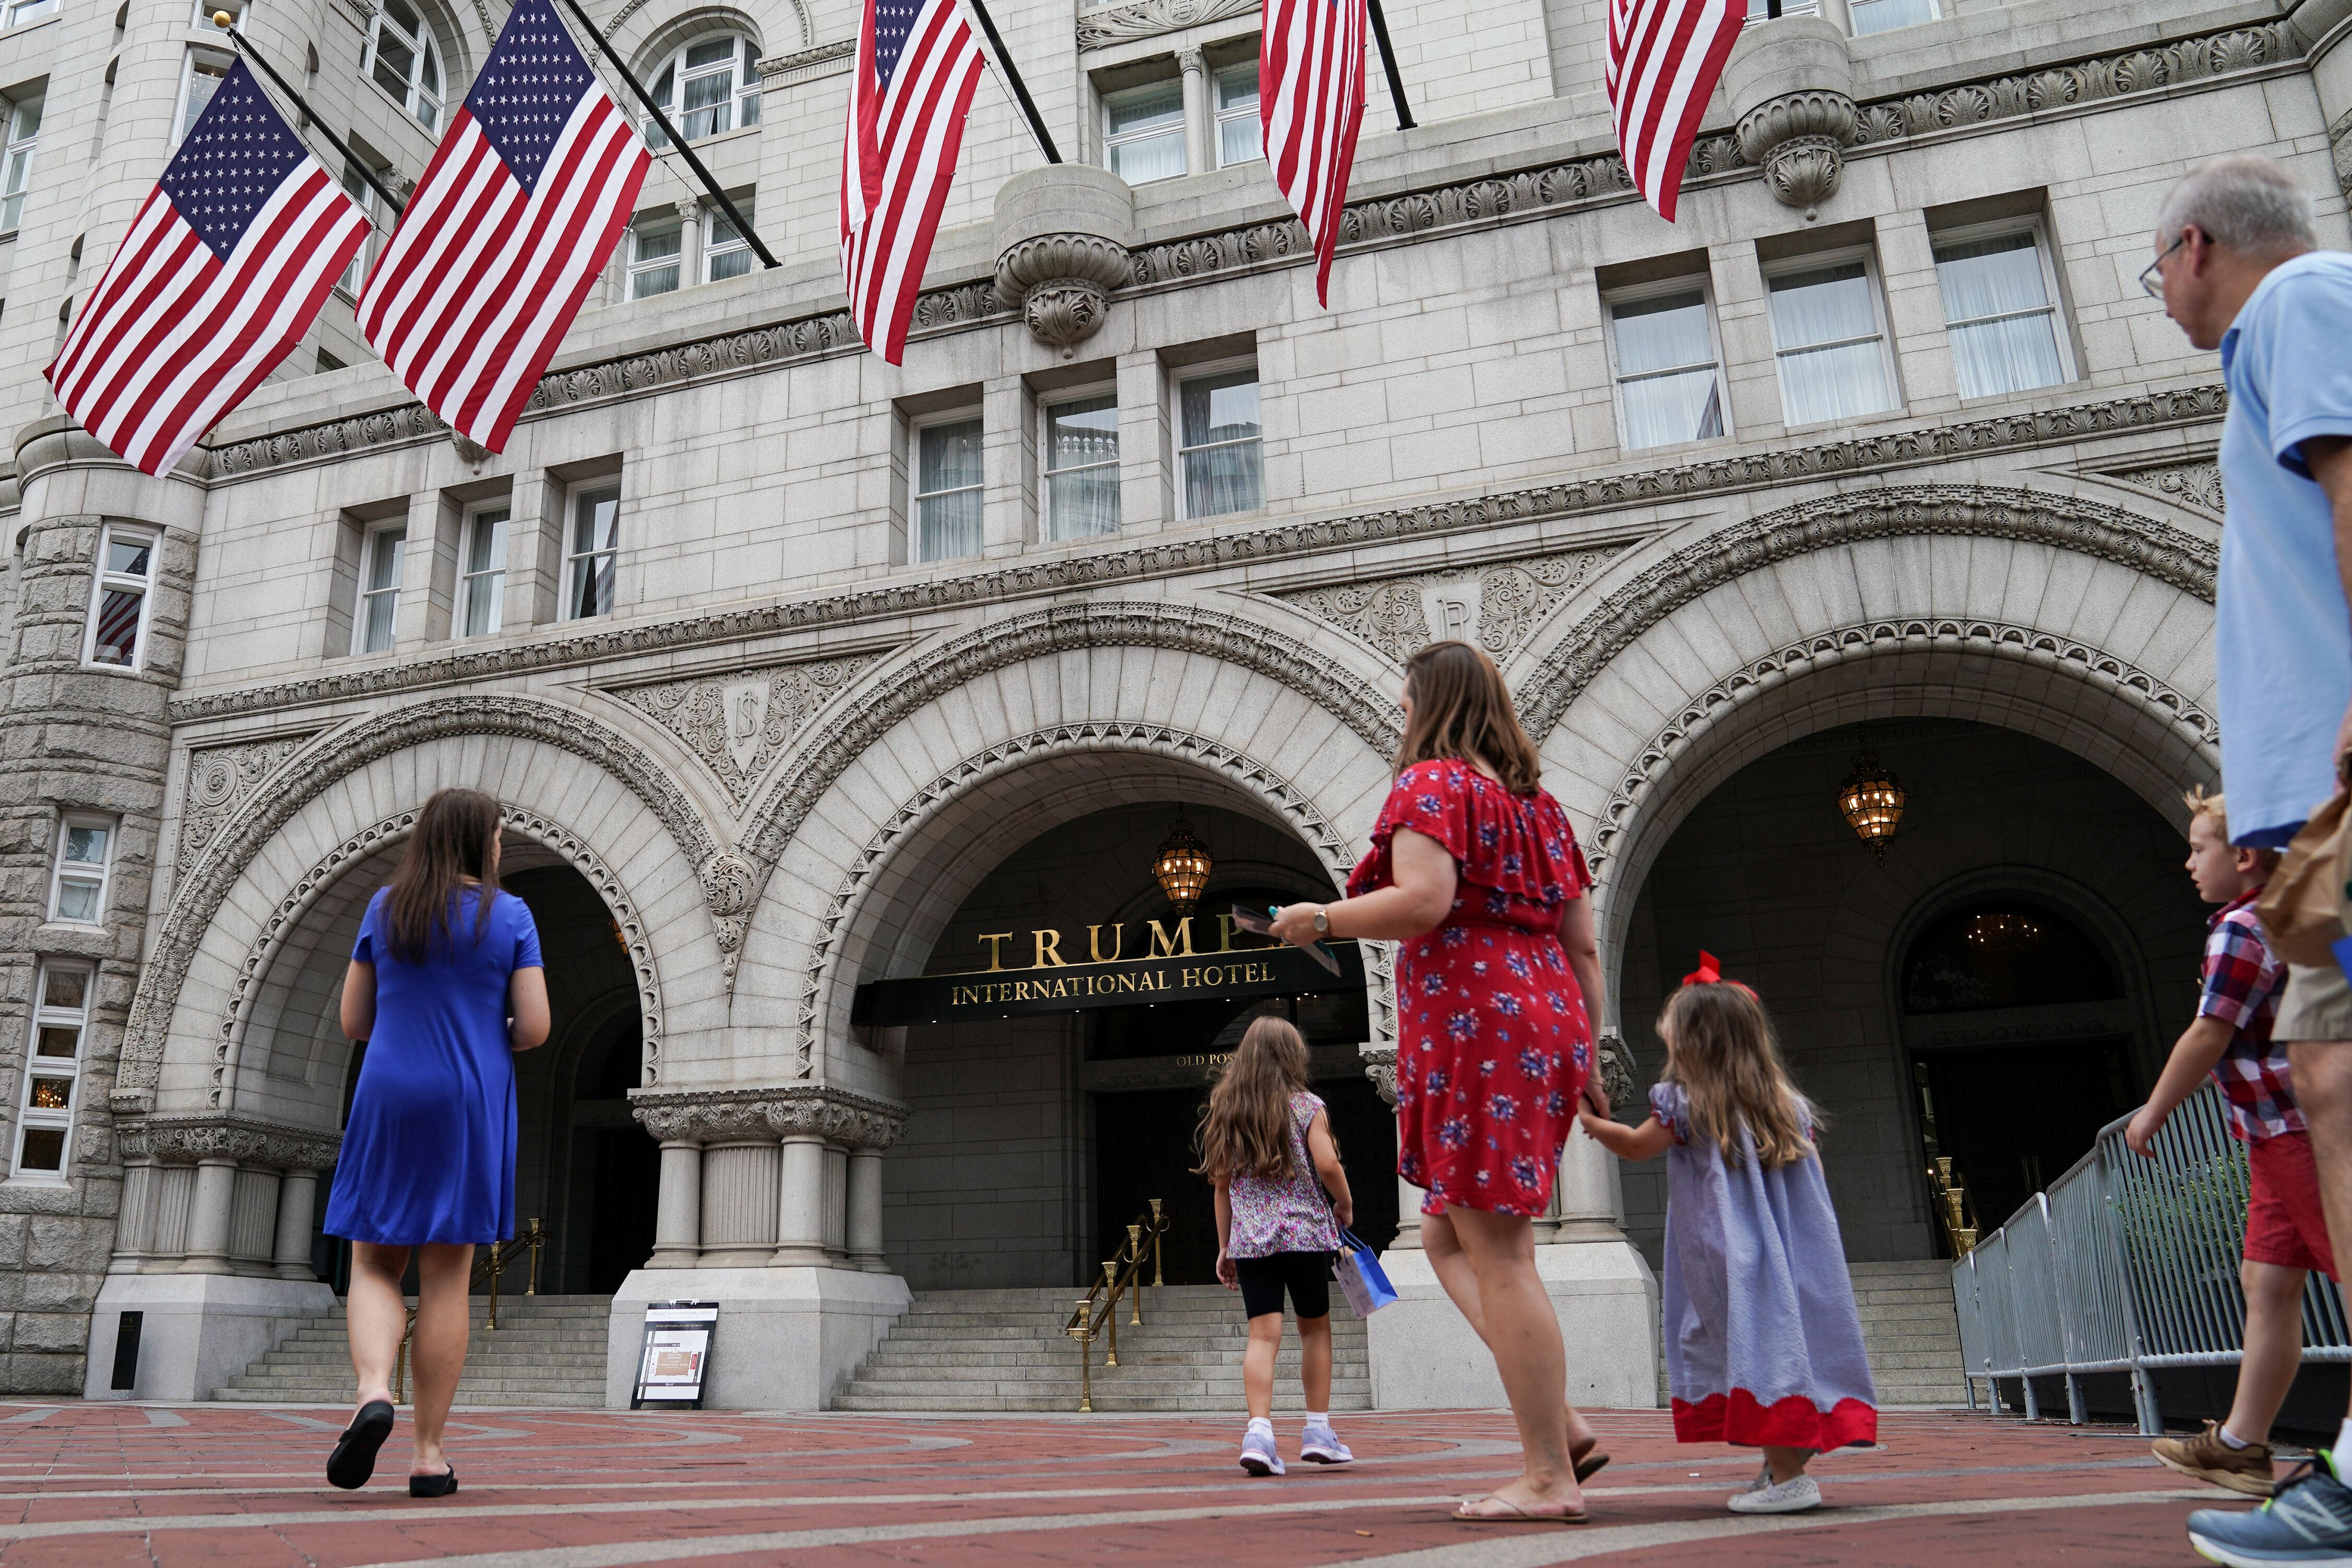 Trump International Hotel in Washington has an unfair advantage in attracting foreign visitors in town to curry favor with th